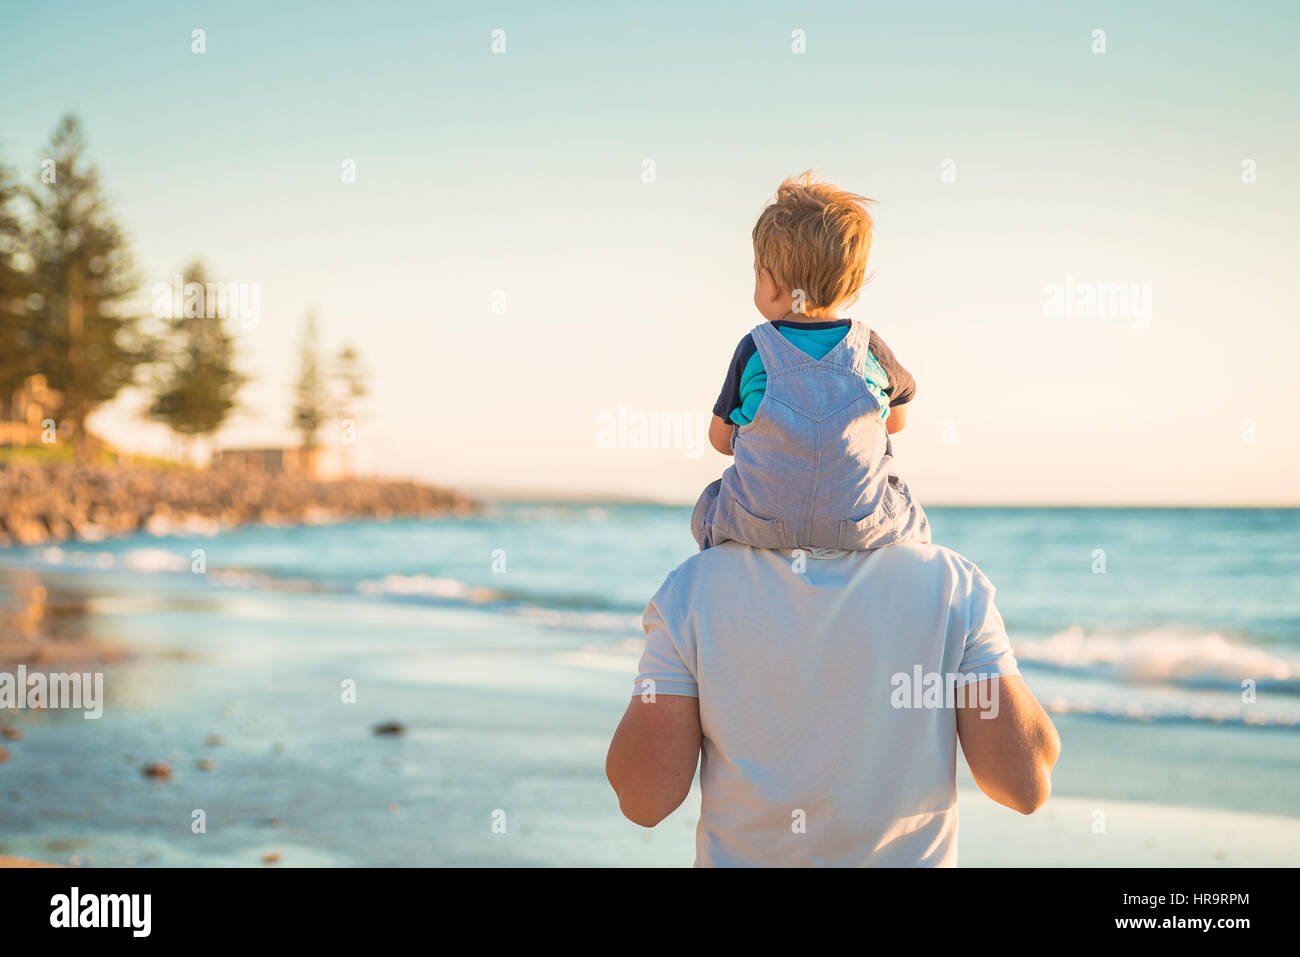 Father giving son piggyback ride on beach - Stock Image